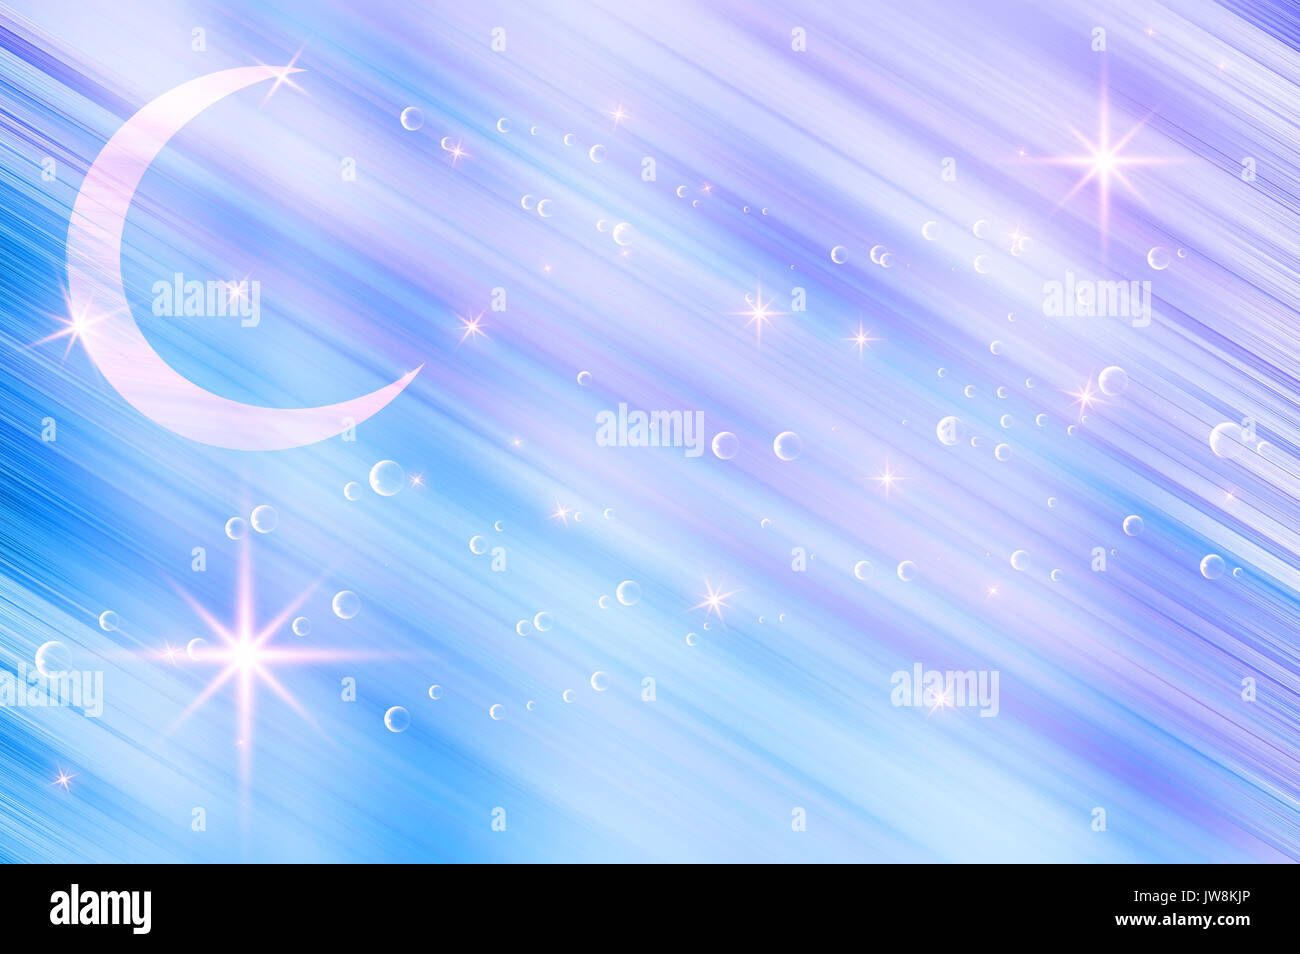 abstract blue background with crescent - Stock Image